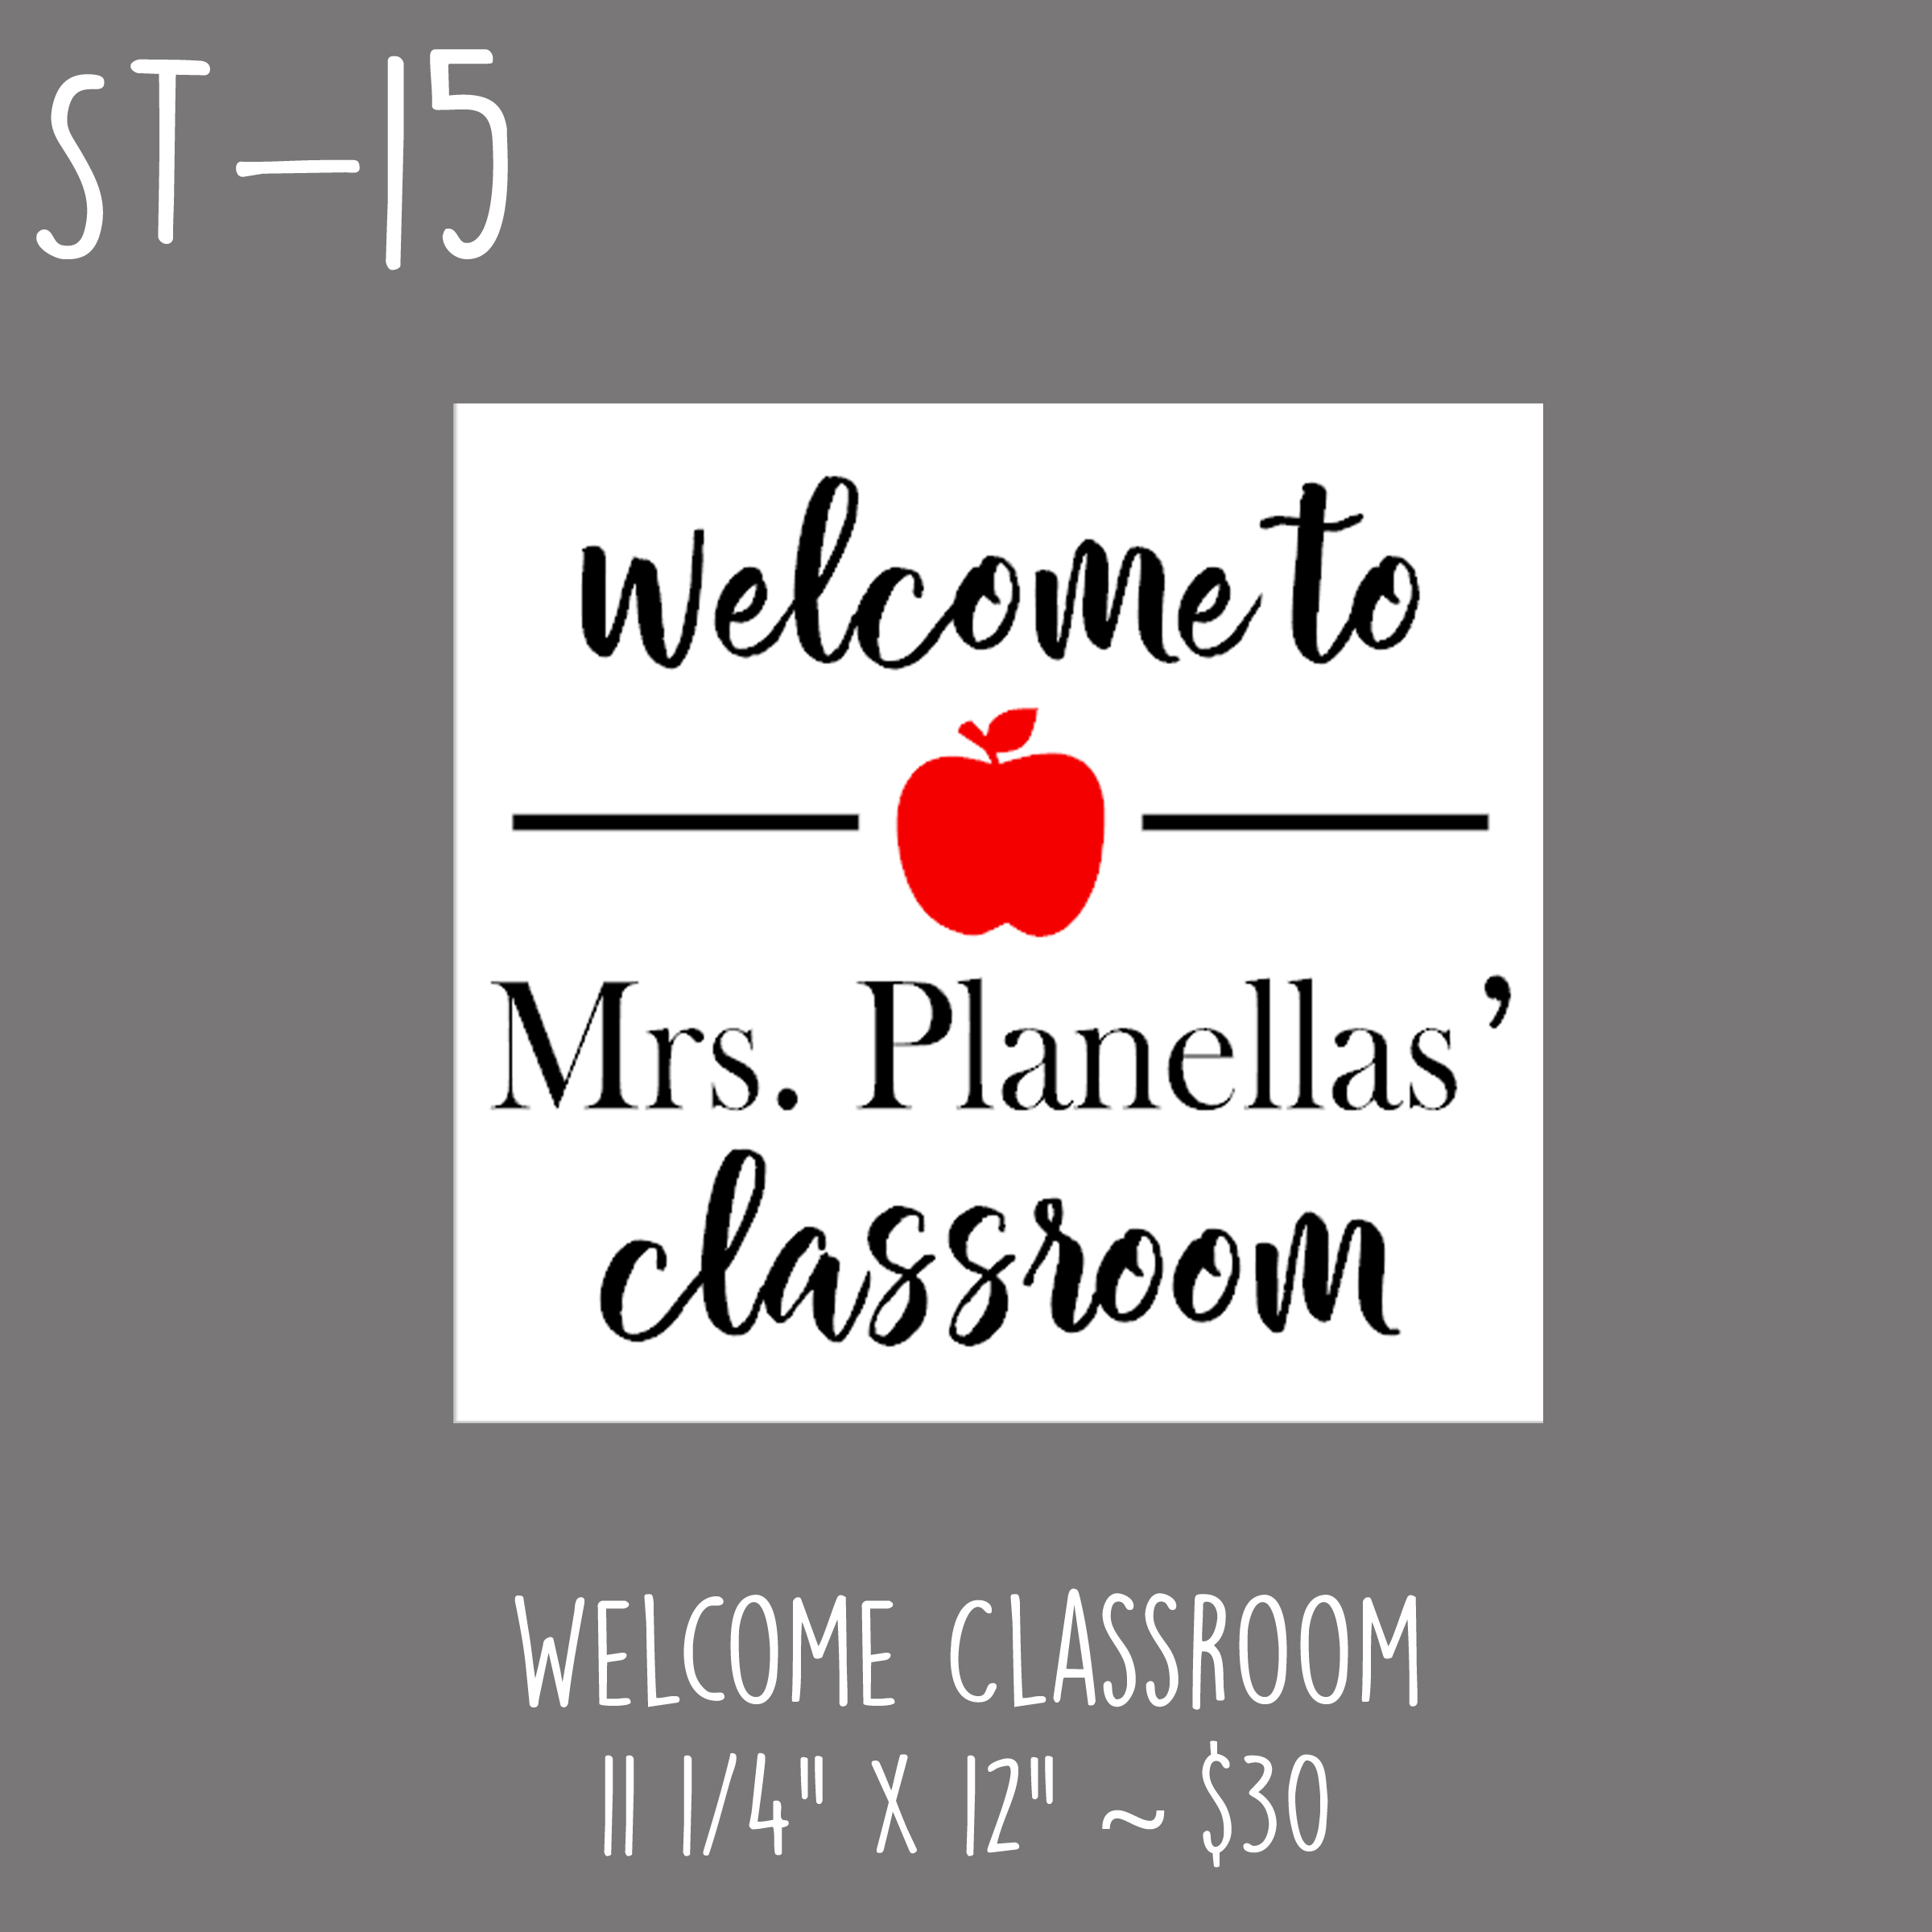 ST15 - Welcome Classroom2.jpg